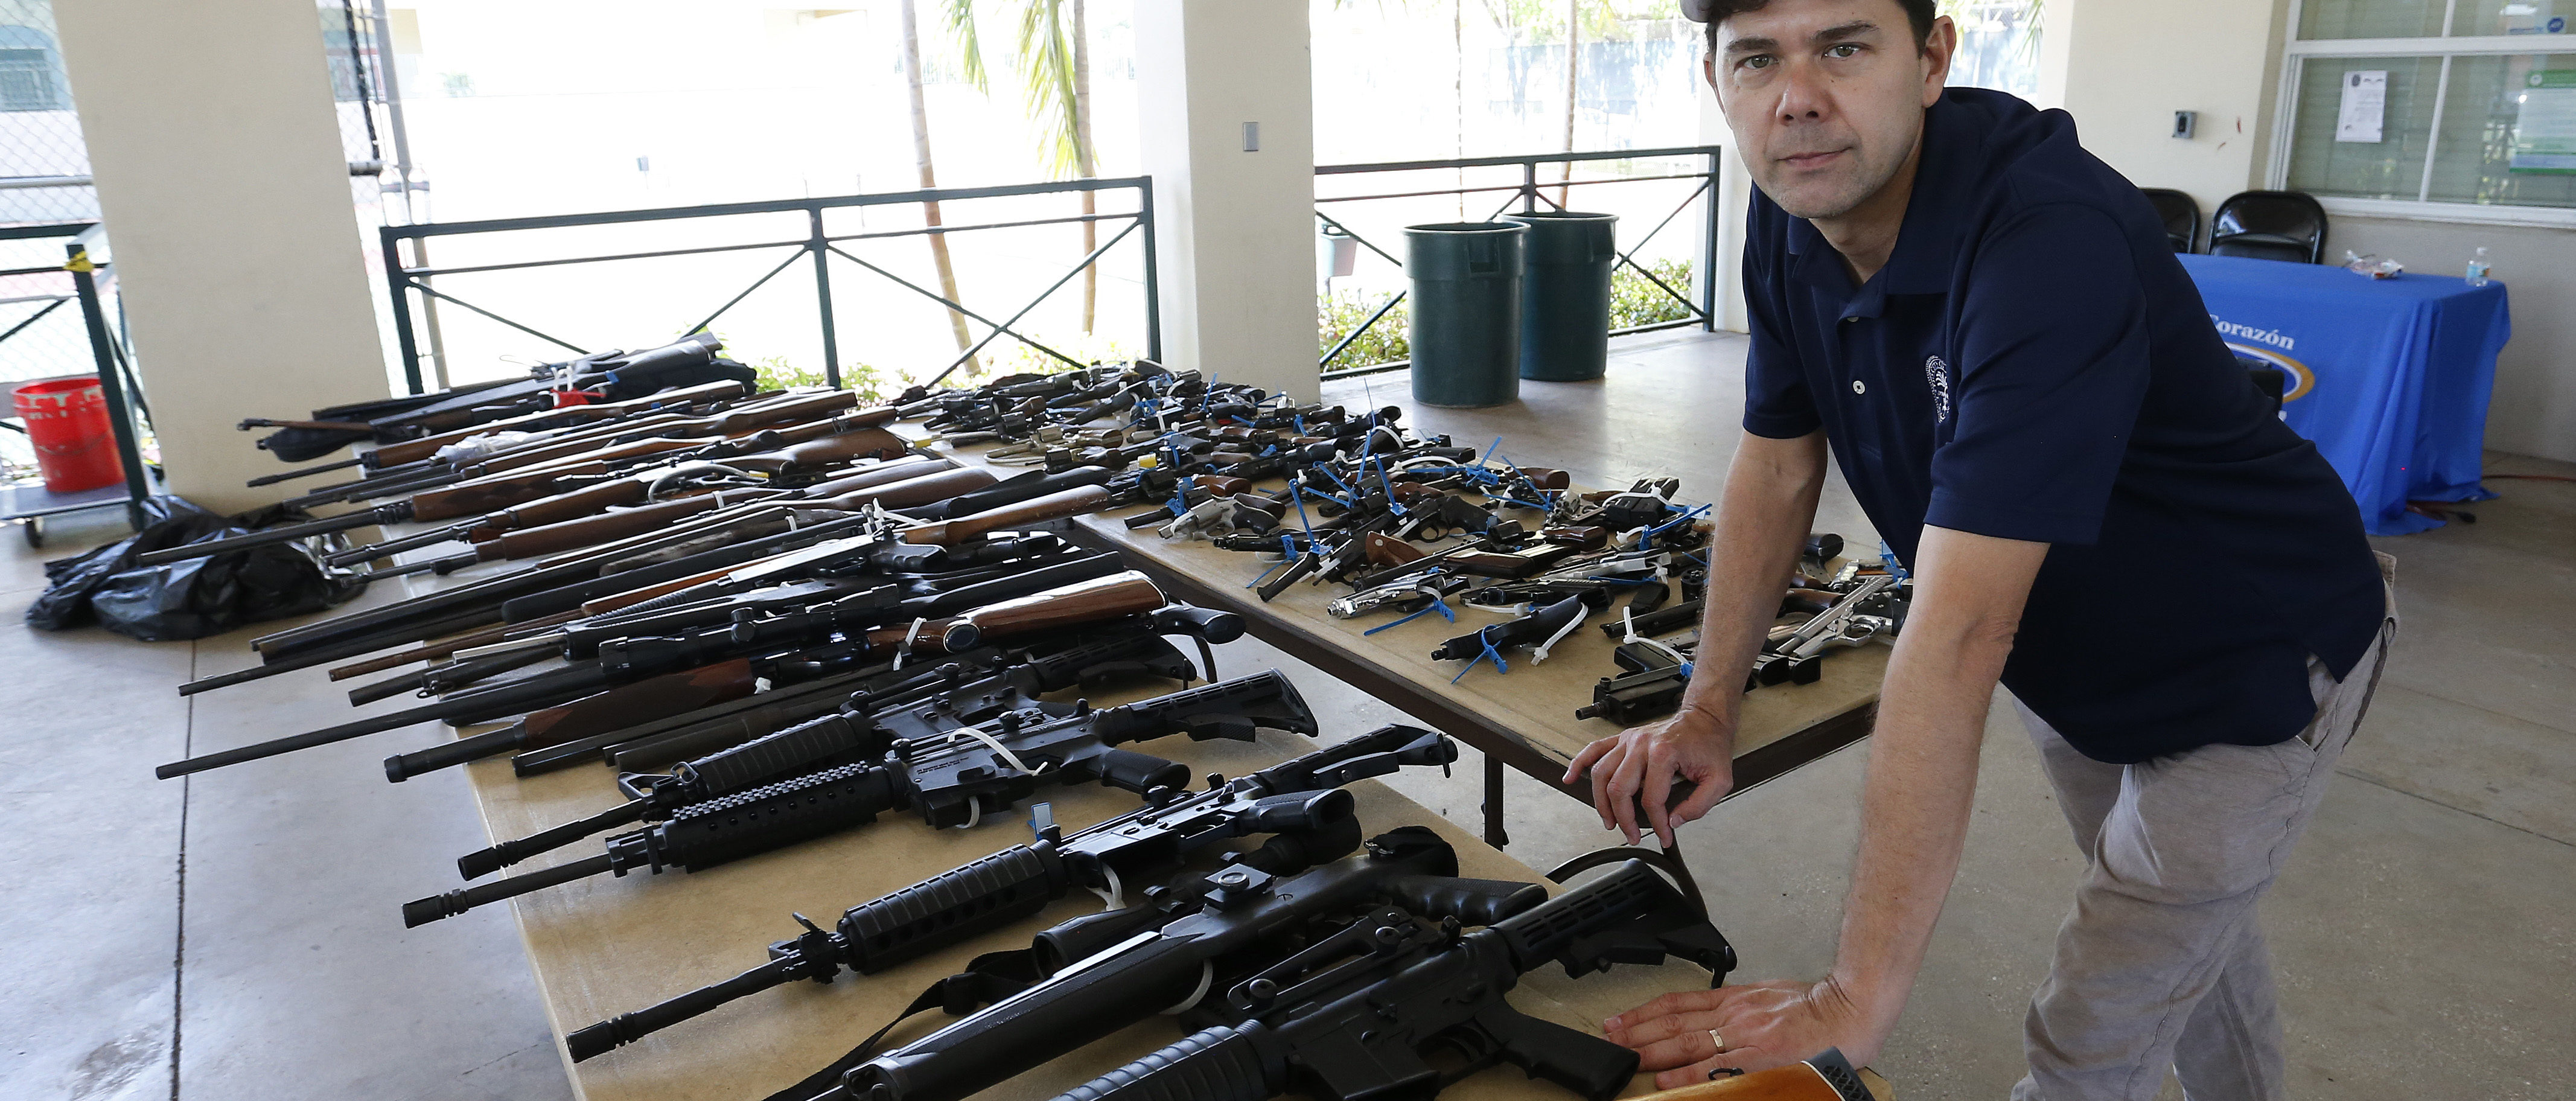 City of Miami Commissioner Ken Russell poses in front of the guns surrendered during a City of Miami gun buyback event in Miami, Florida on March 17, 2018. (Photo by RHONA WISE/AFP/Getty Images)